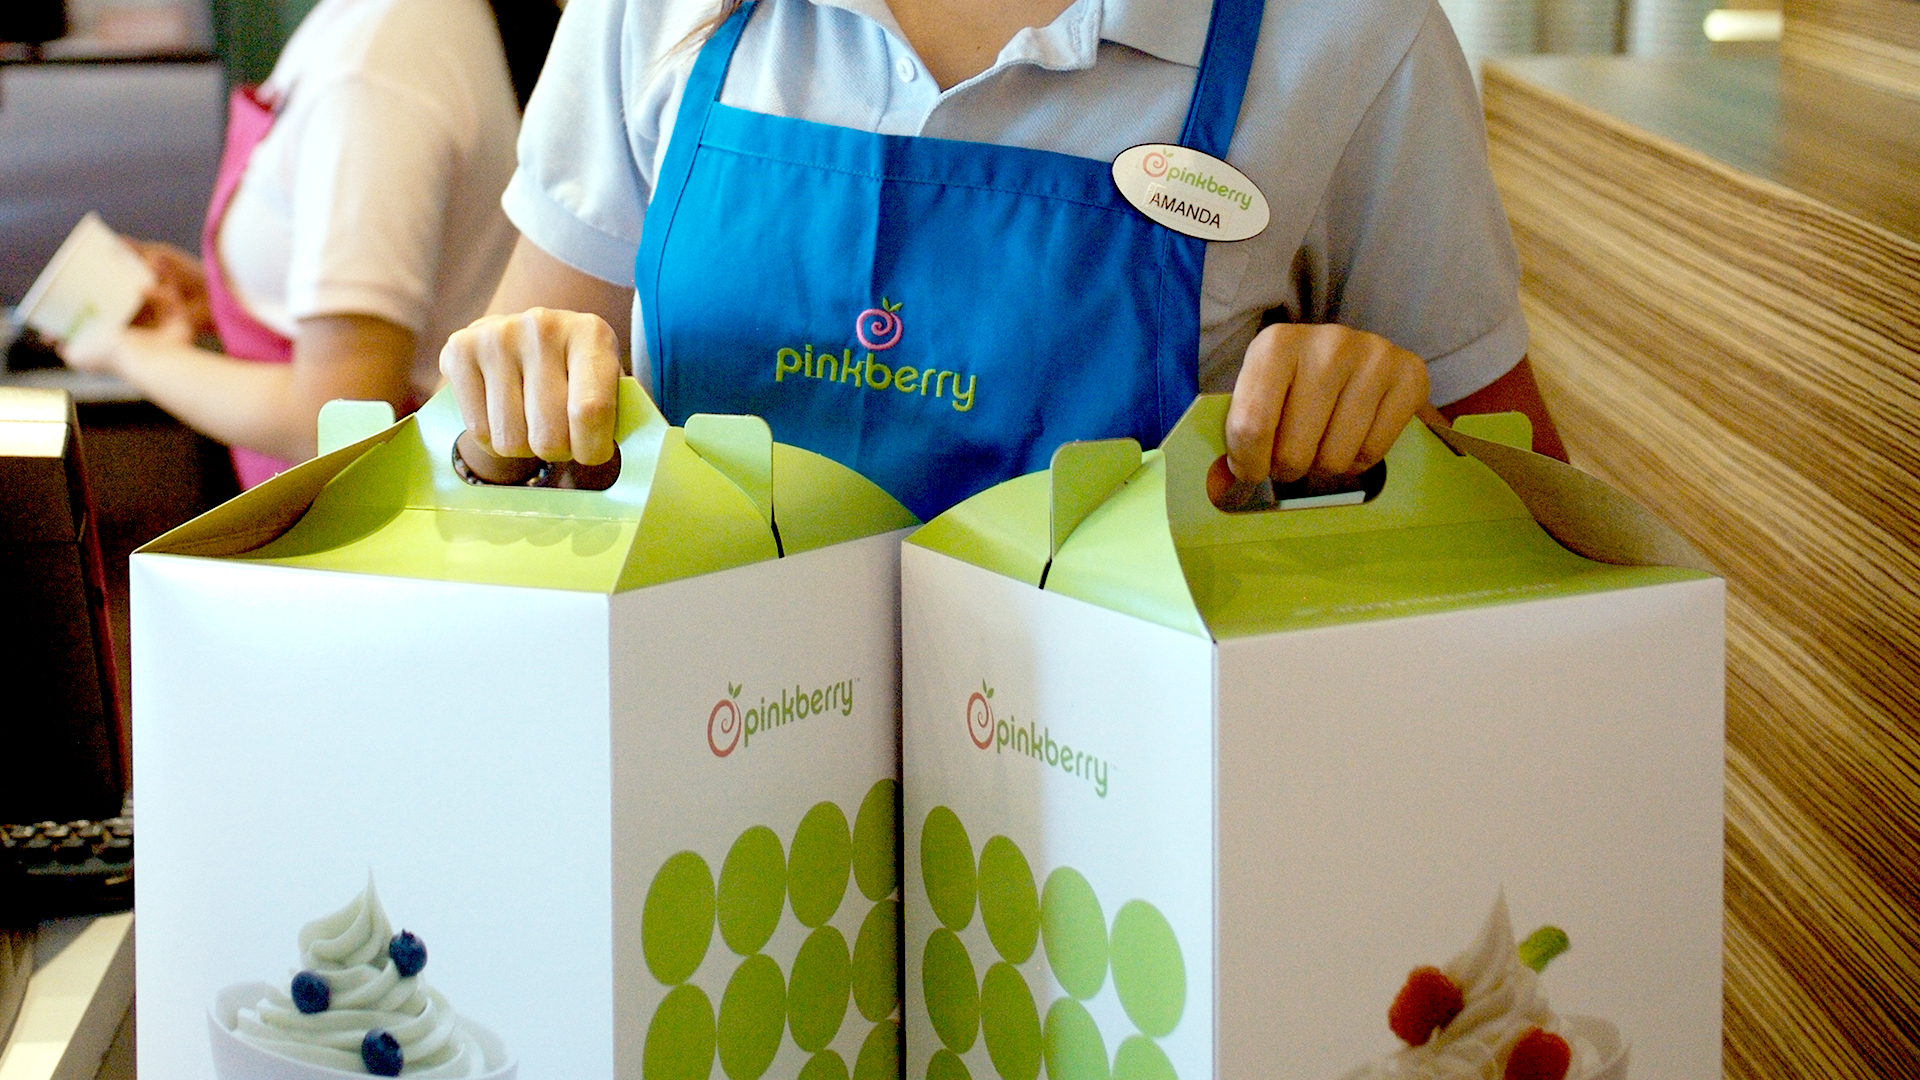 pinkberry_02_packaging